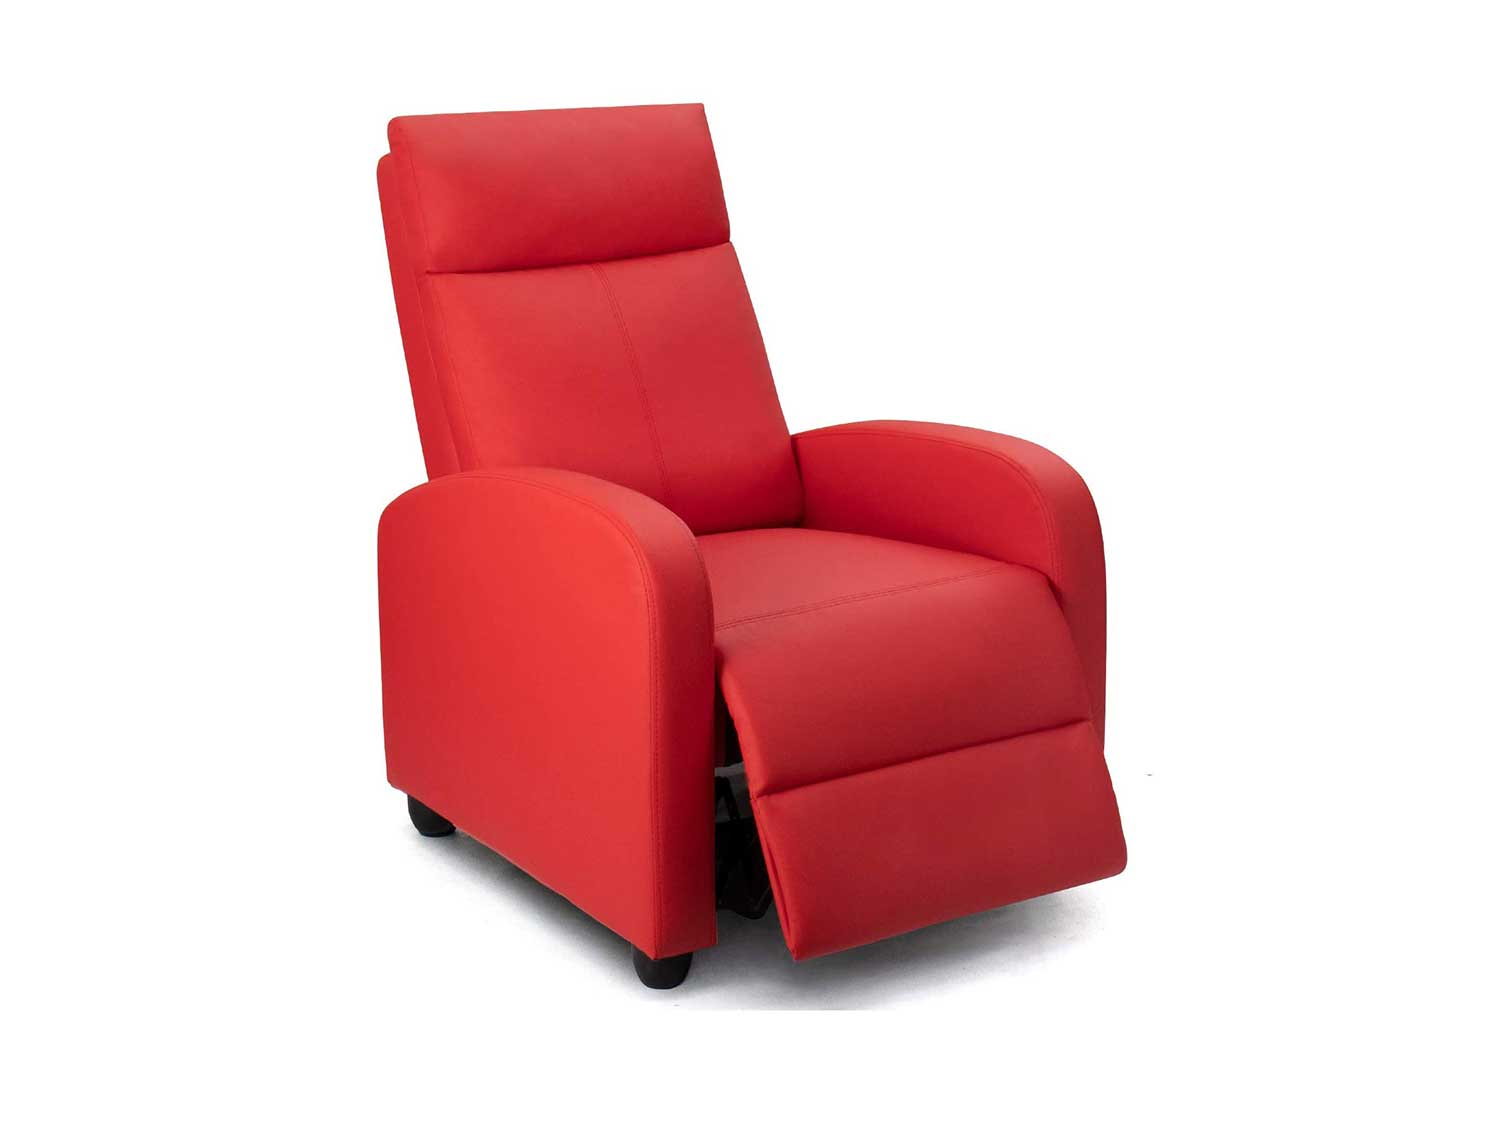 Homall Recliner Chair Padded Seat Massage Pu Leather for Living Room Single Sofa Recliner Modern Recliner Seat Club Chair Home Theater Seating (Red)